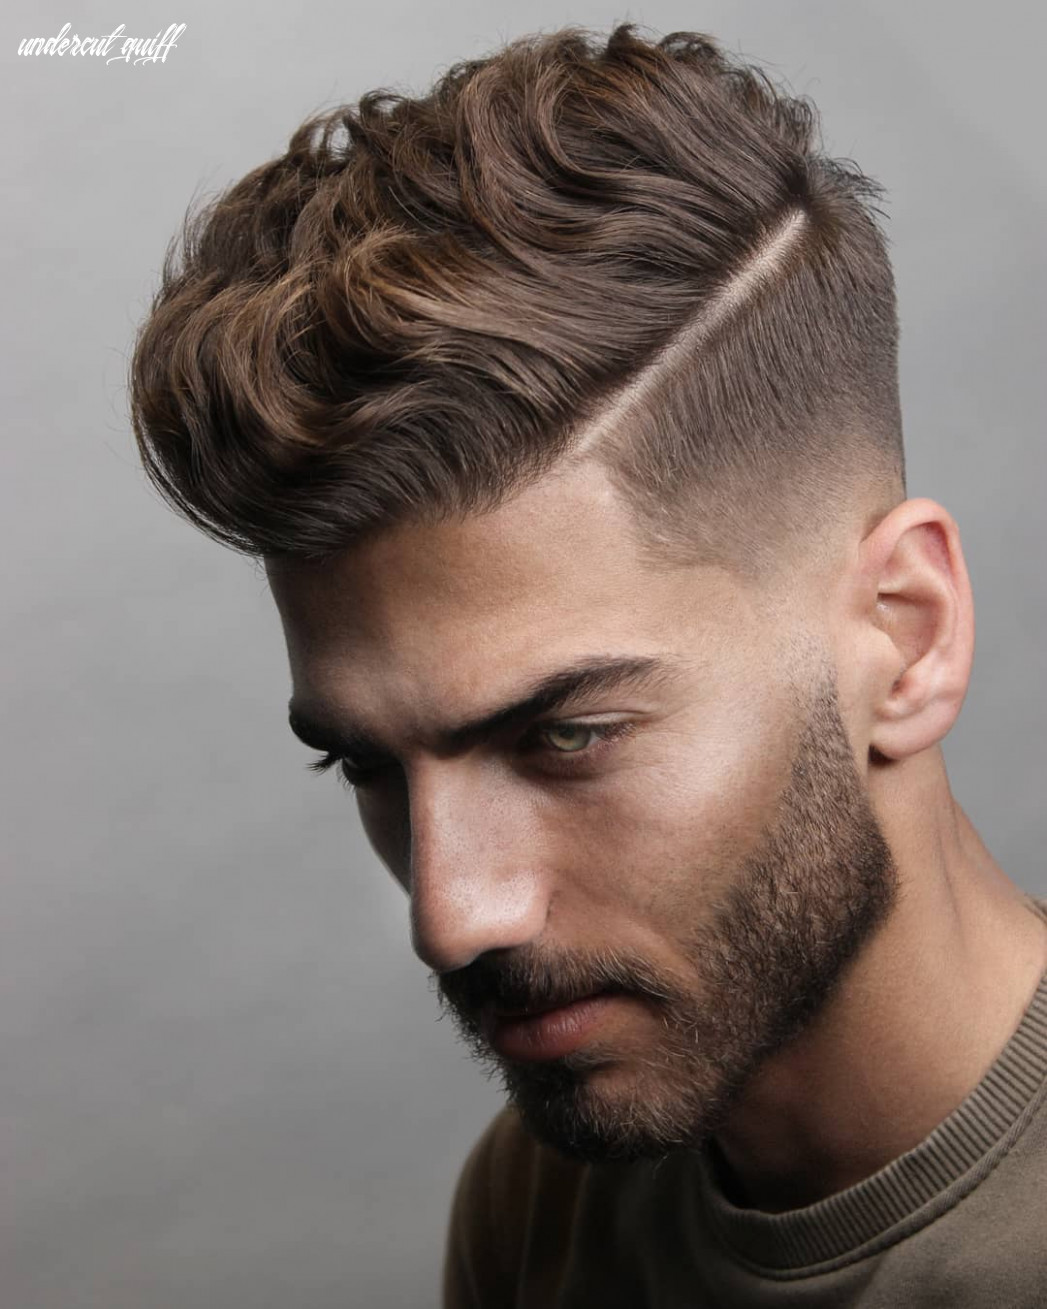 11 short on sides long on top haircuts for men | man haircuts undercut quiff